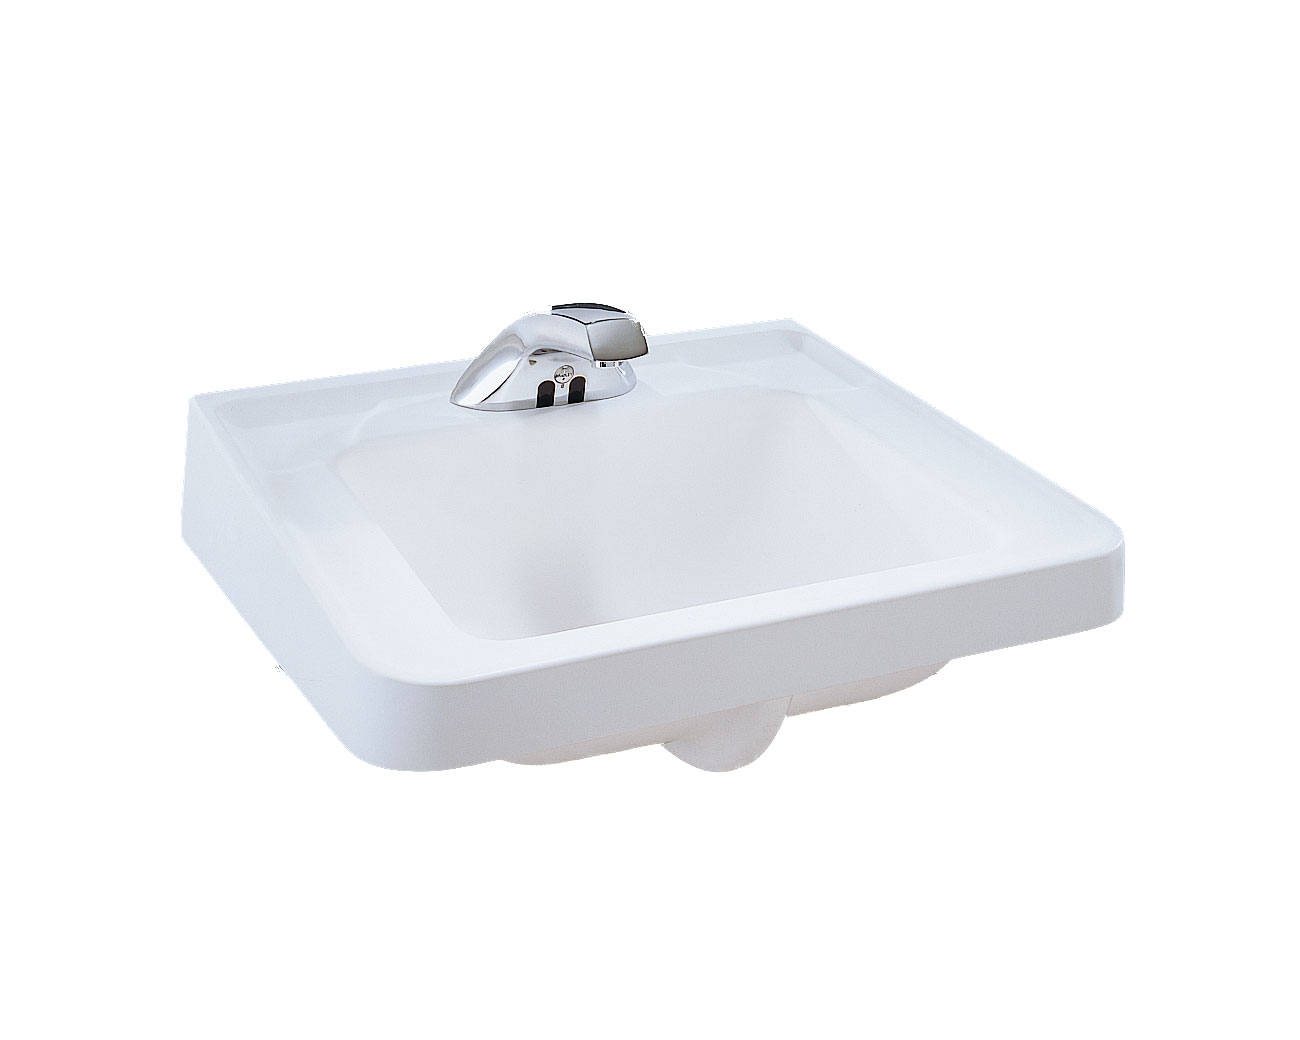 Bathroom Lavatory Sink Commercial Bathroom Lavatory Systems